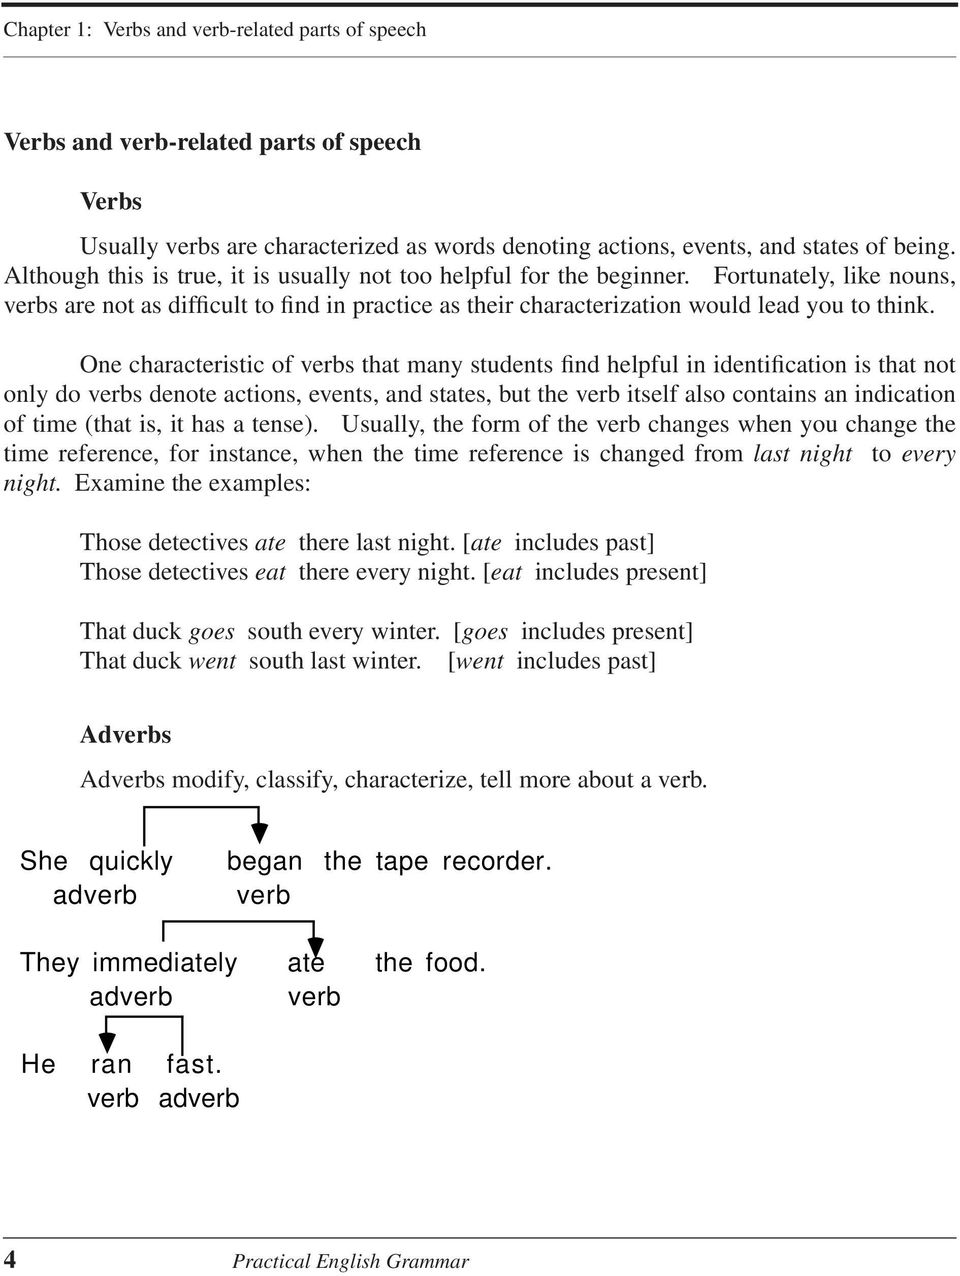 One characteristic of verbs that many students find helpful in identification is that not only do verbs denote actions, events, and states, but the verb itself also contains an indication of time